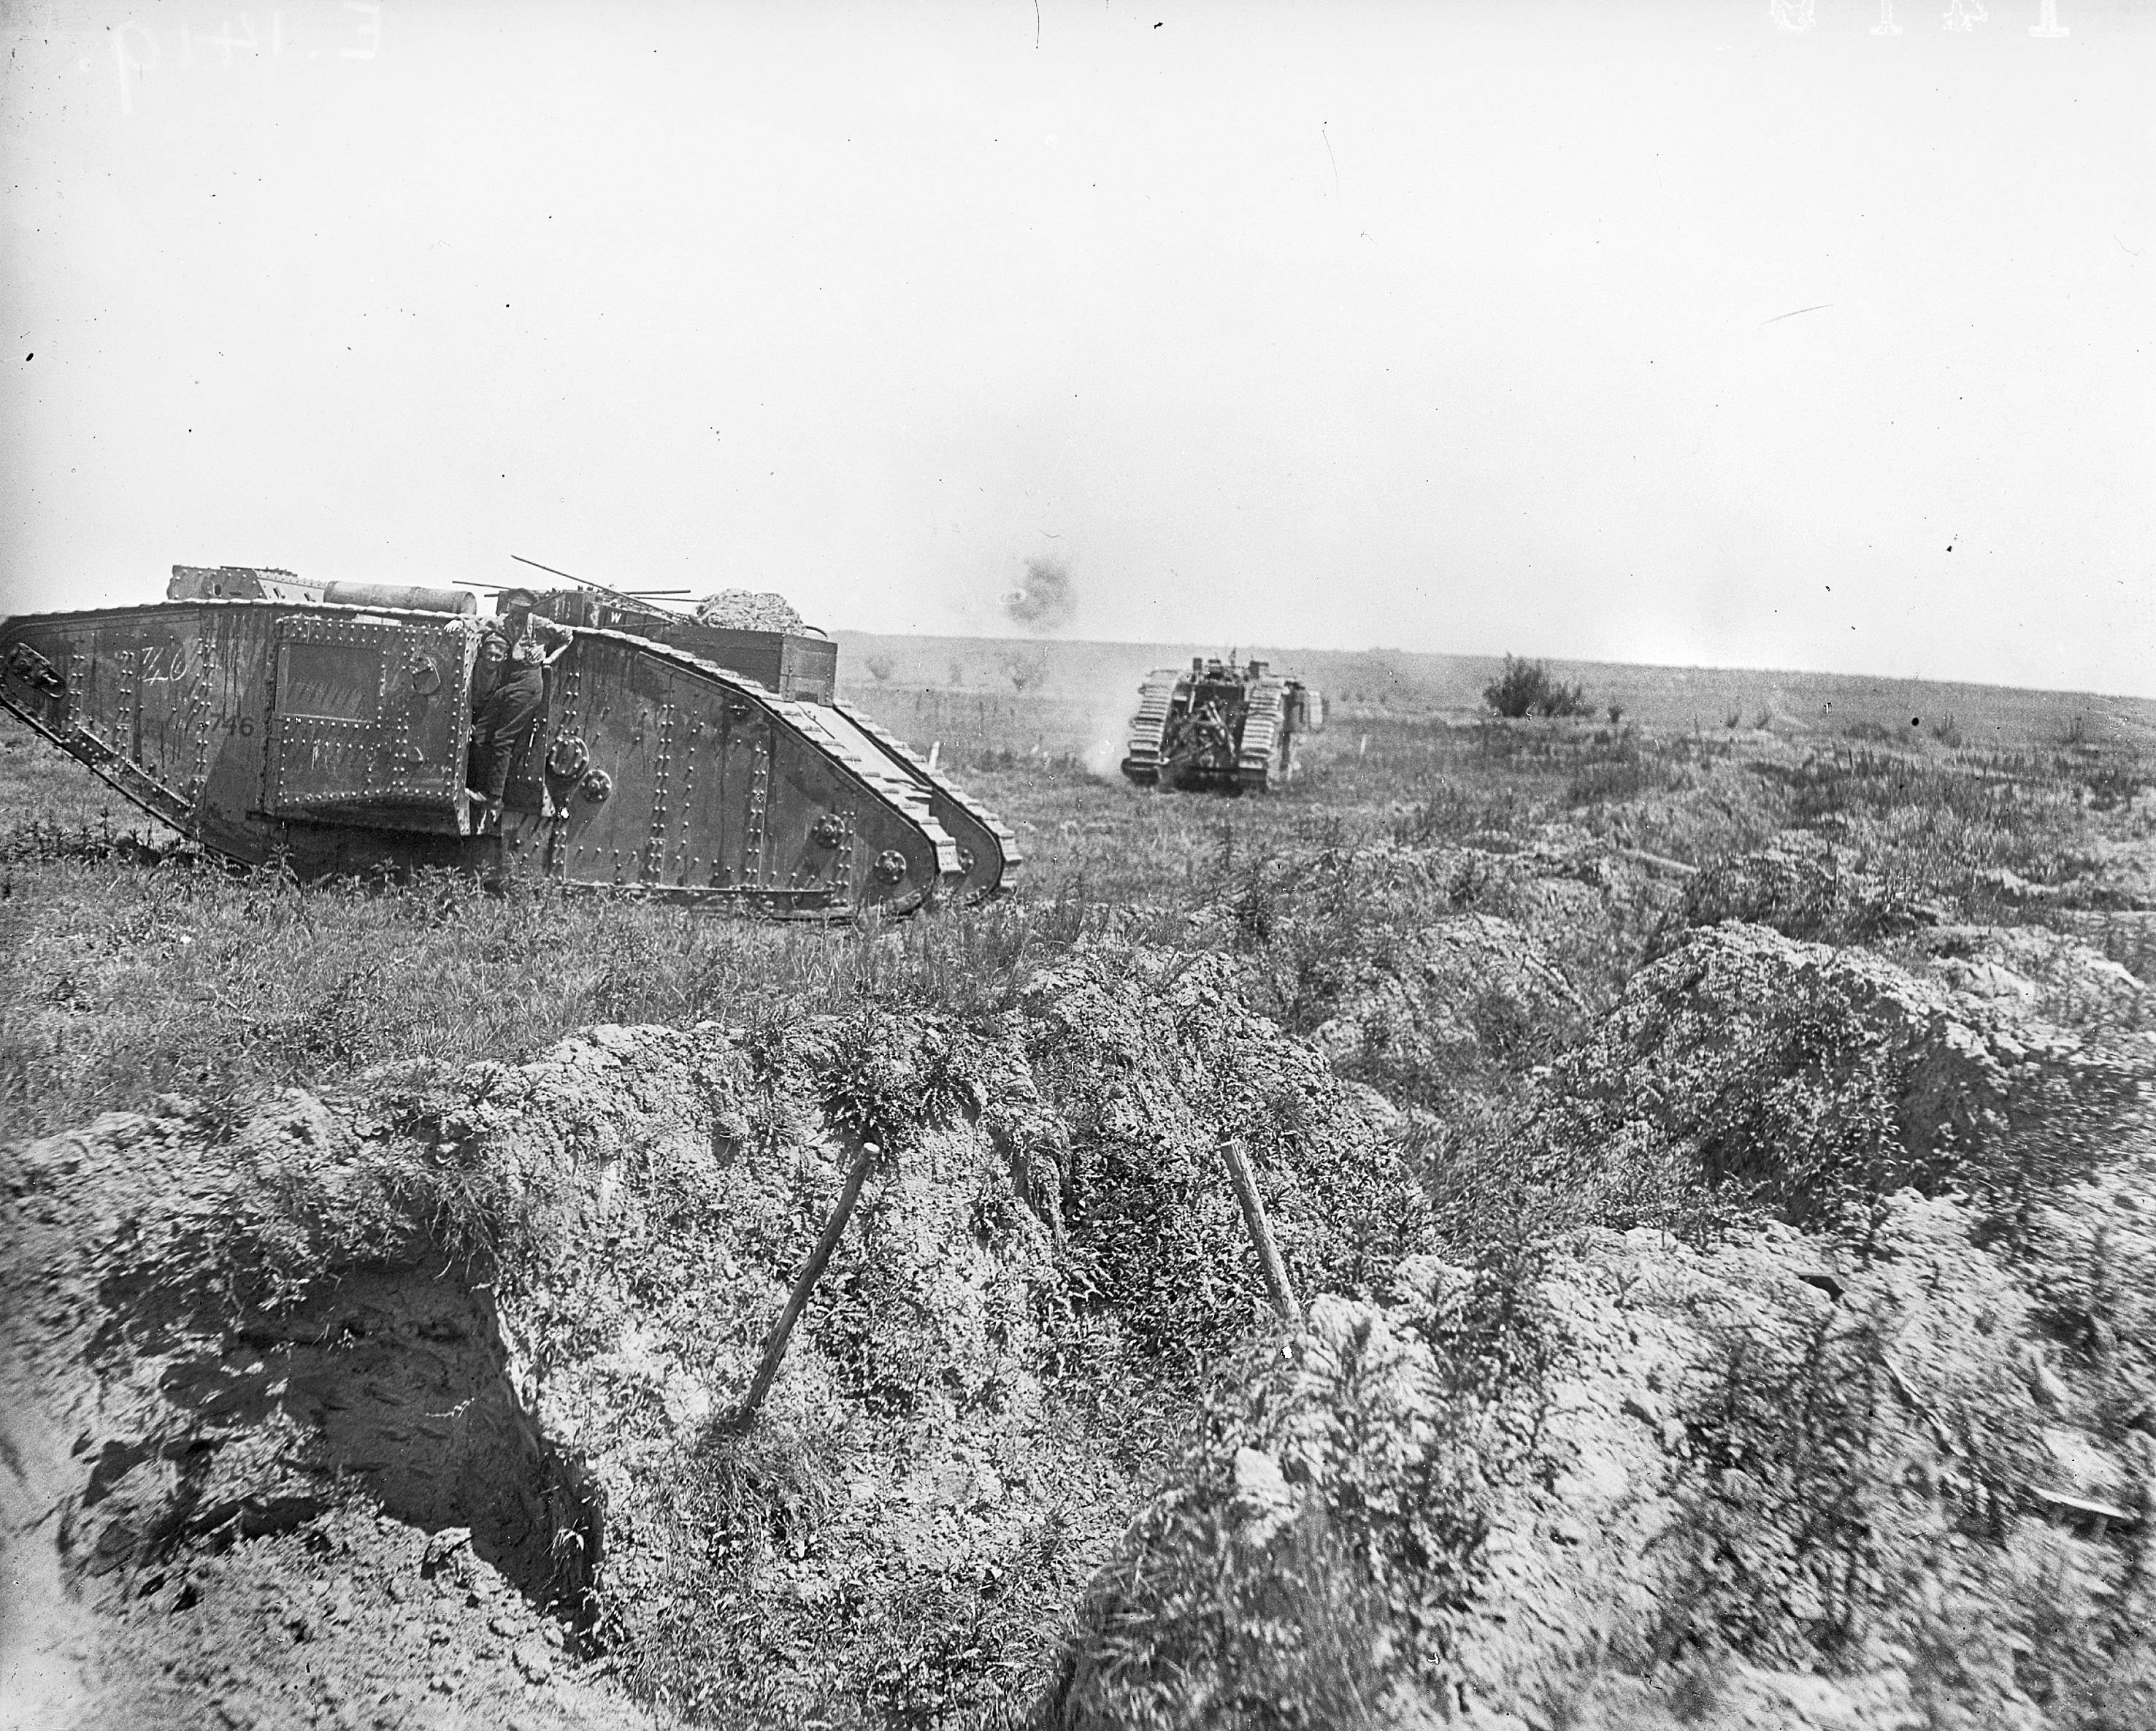 In this June 7, 1917 photo provided by the Australian War Memorial, Australian soldiers man two tanks in action during the attack on Messines Ridge in Messines, Belgium.